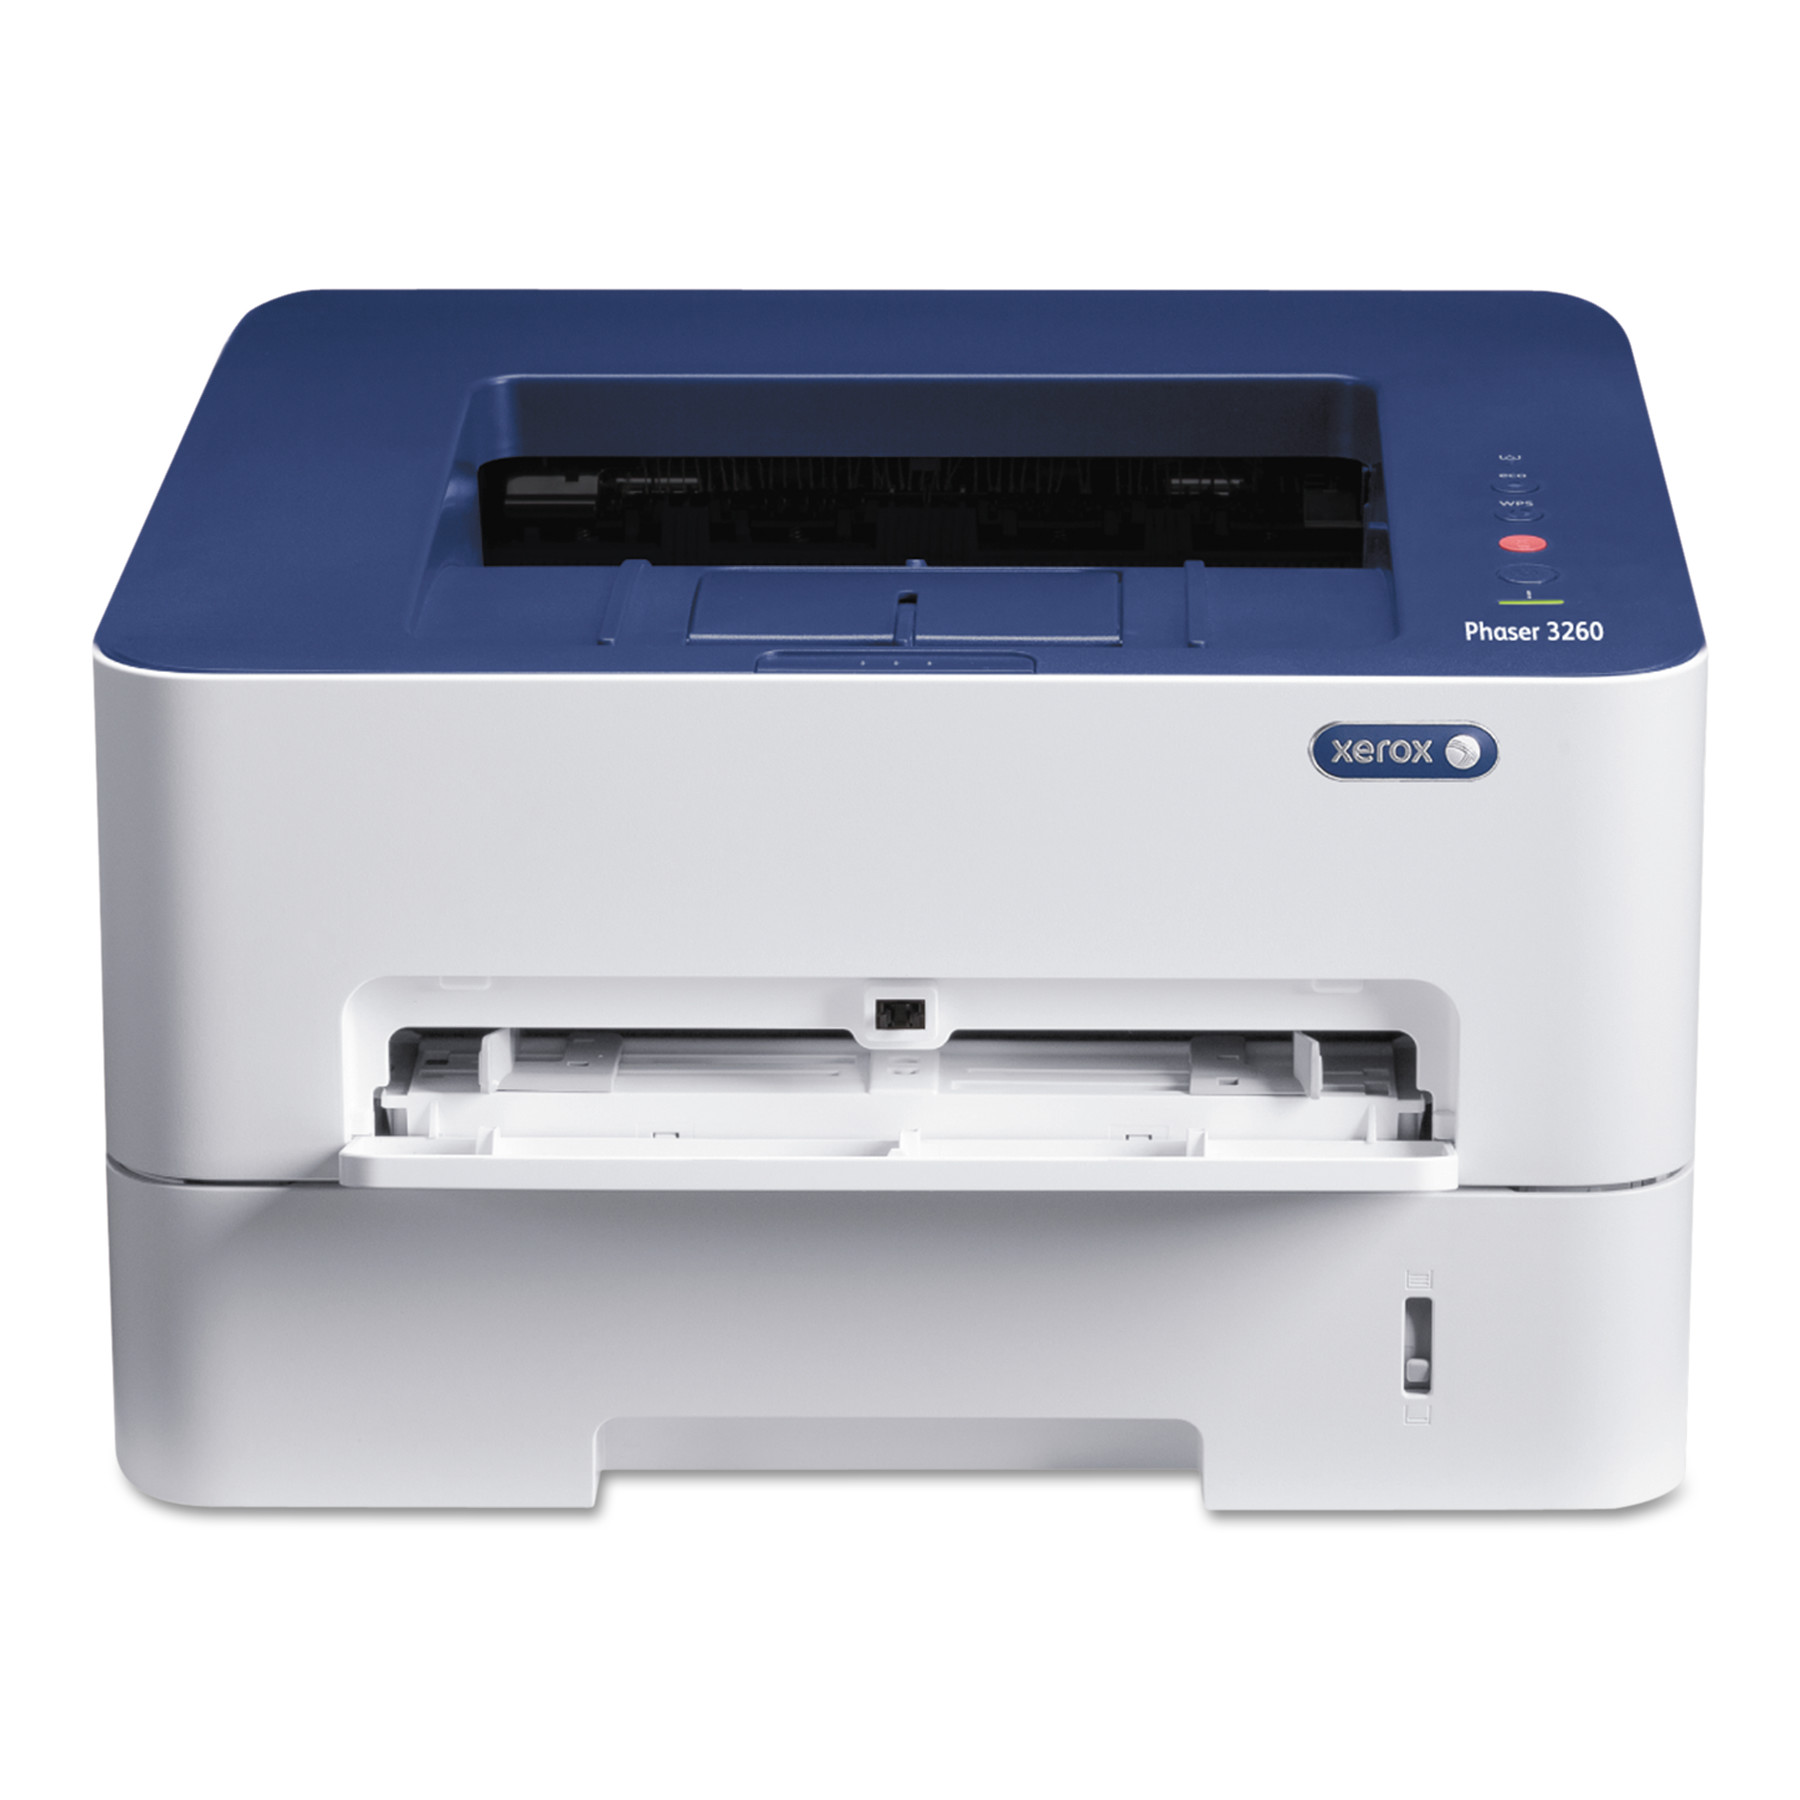 Amazon.com: Brother MFCL2700DW All-In One Laser Printer with ...